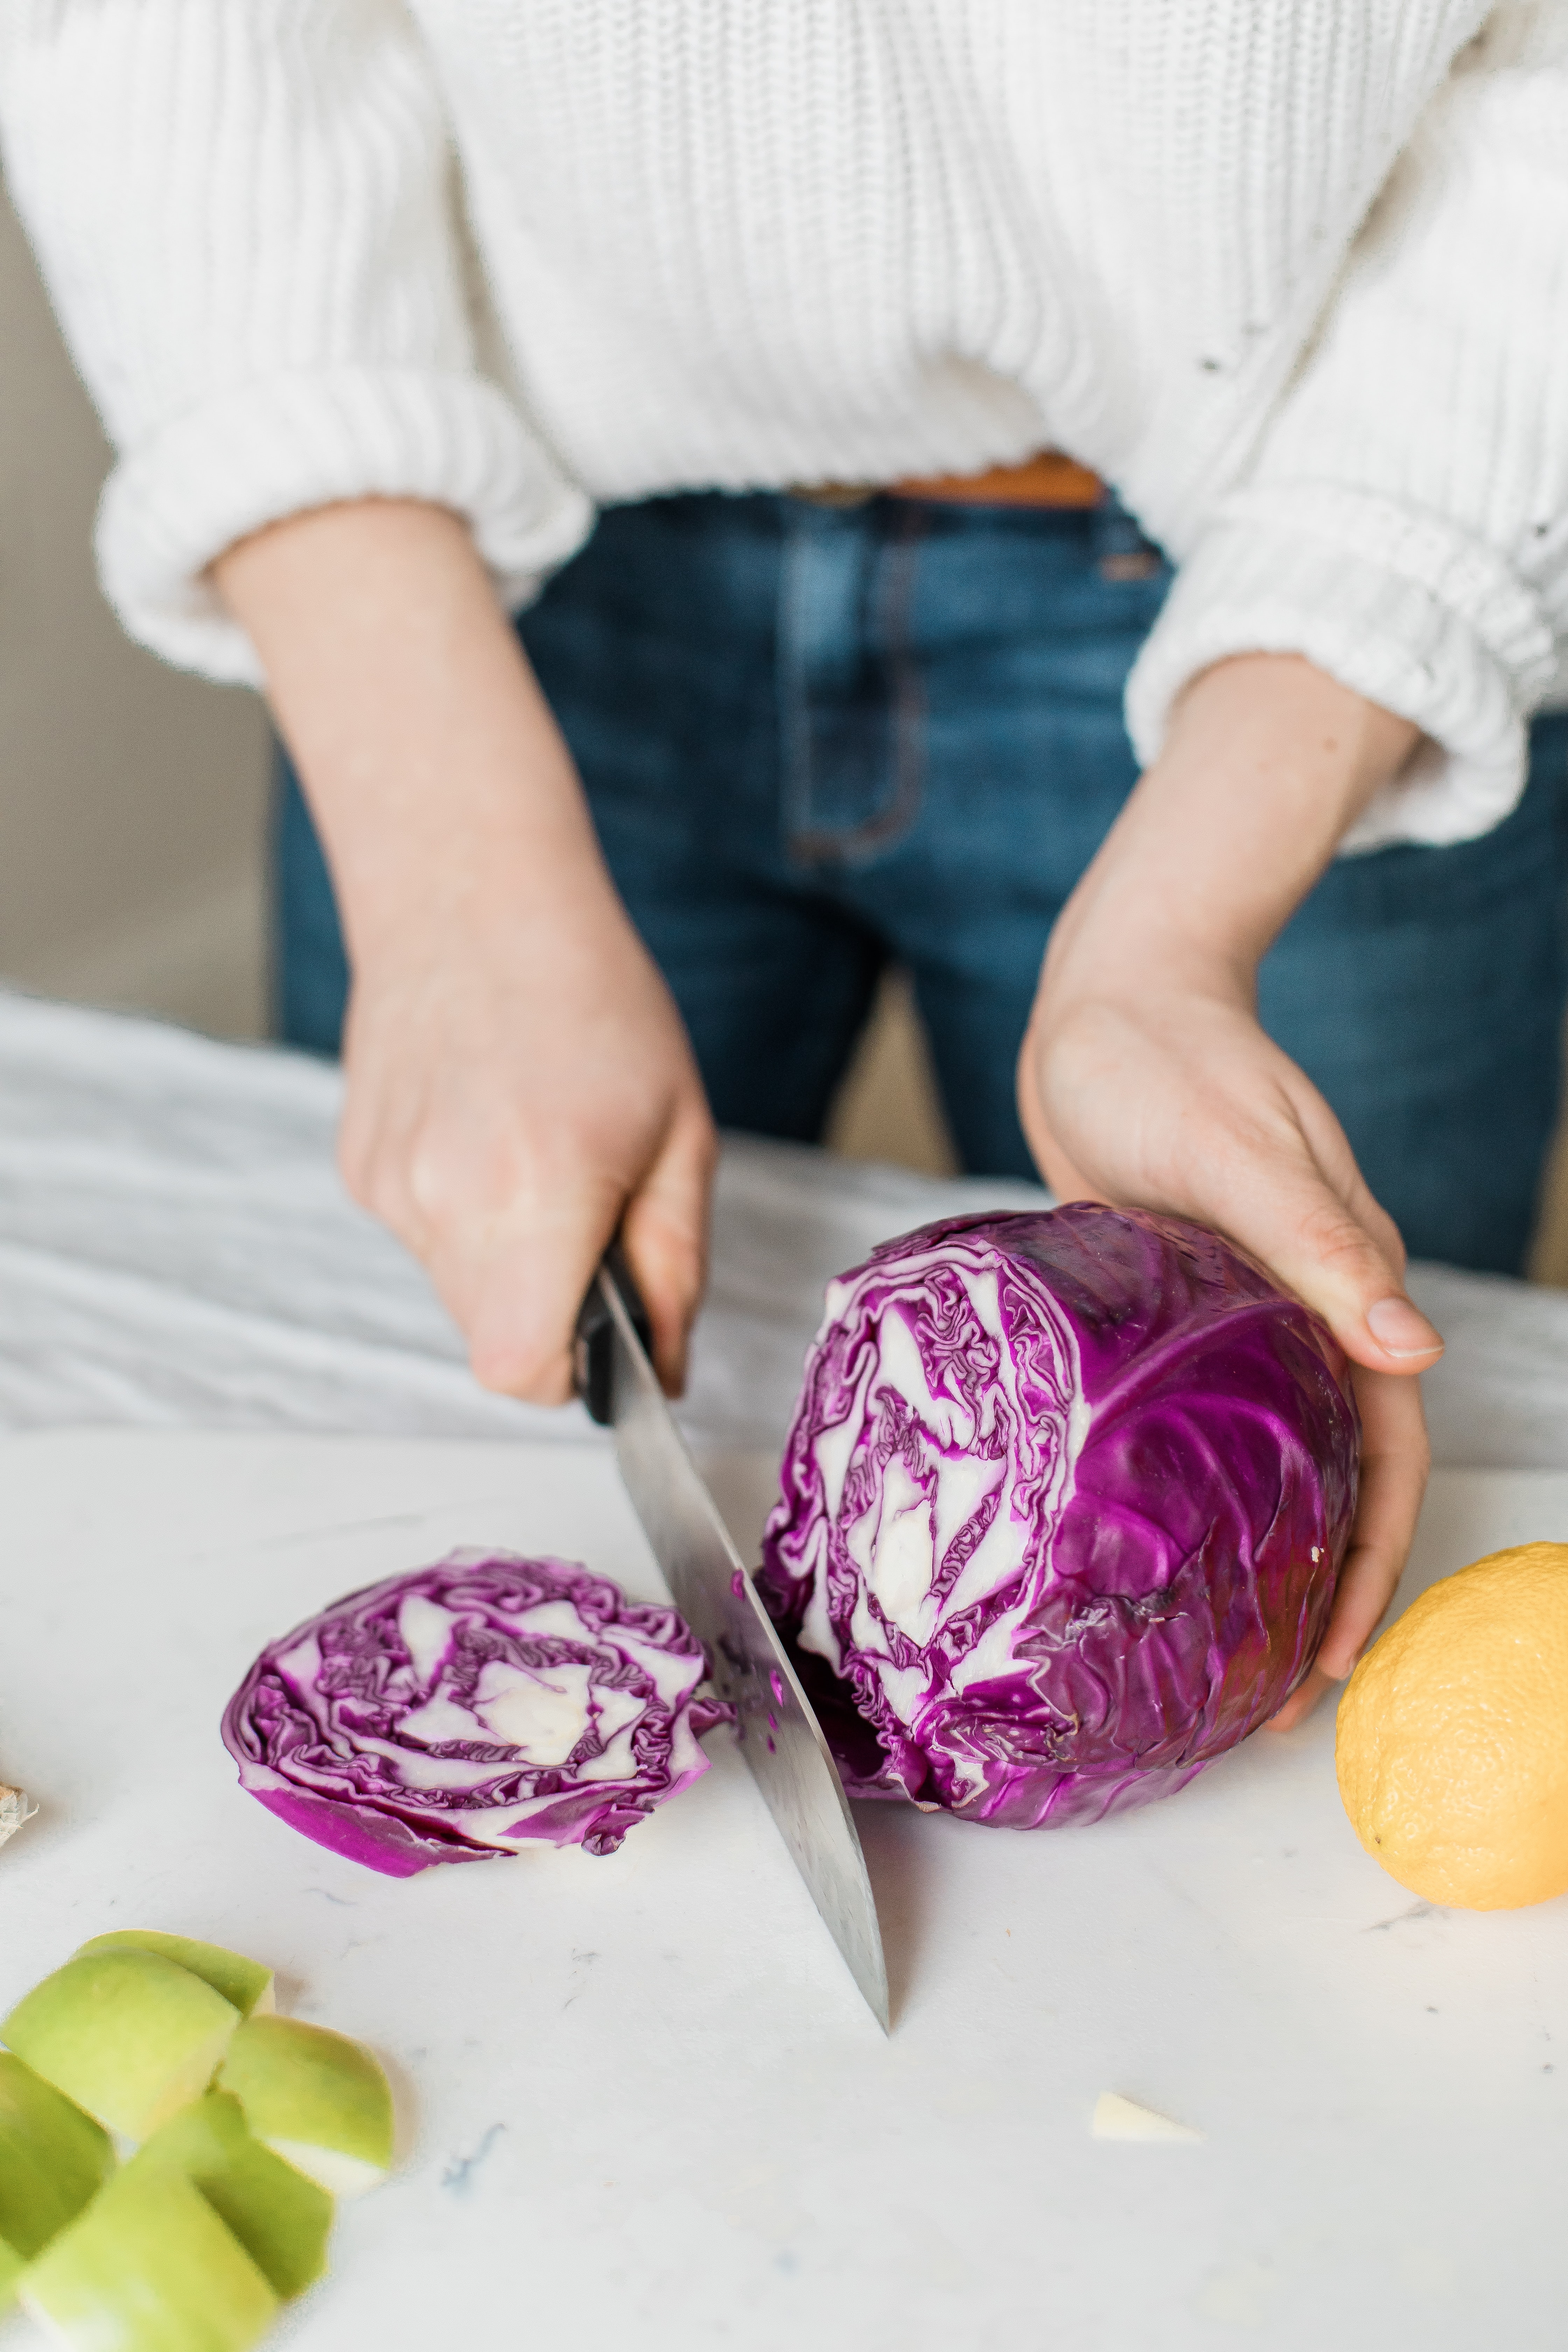 woman's hands cutting purple cabbage with knife